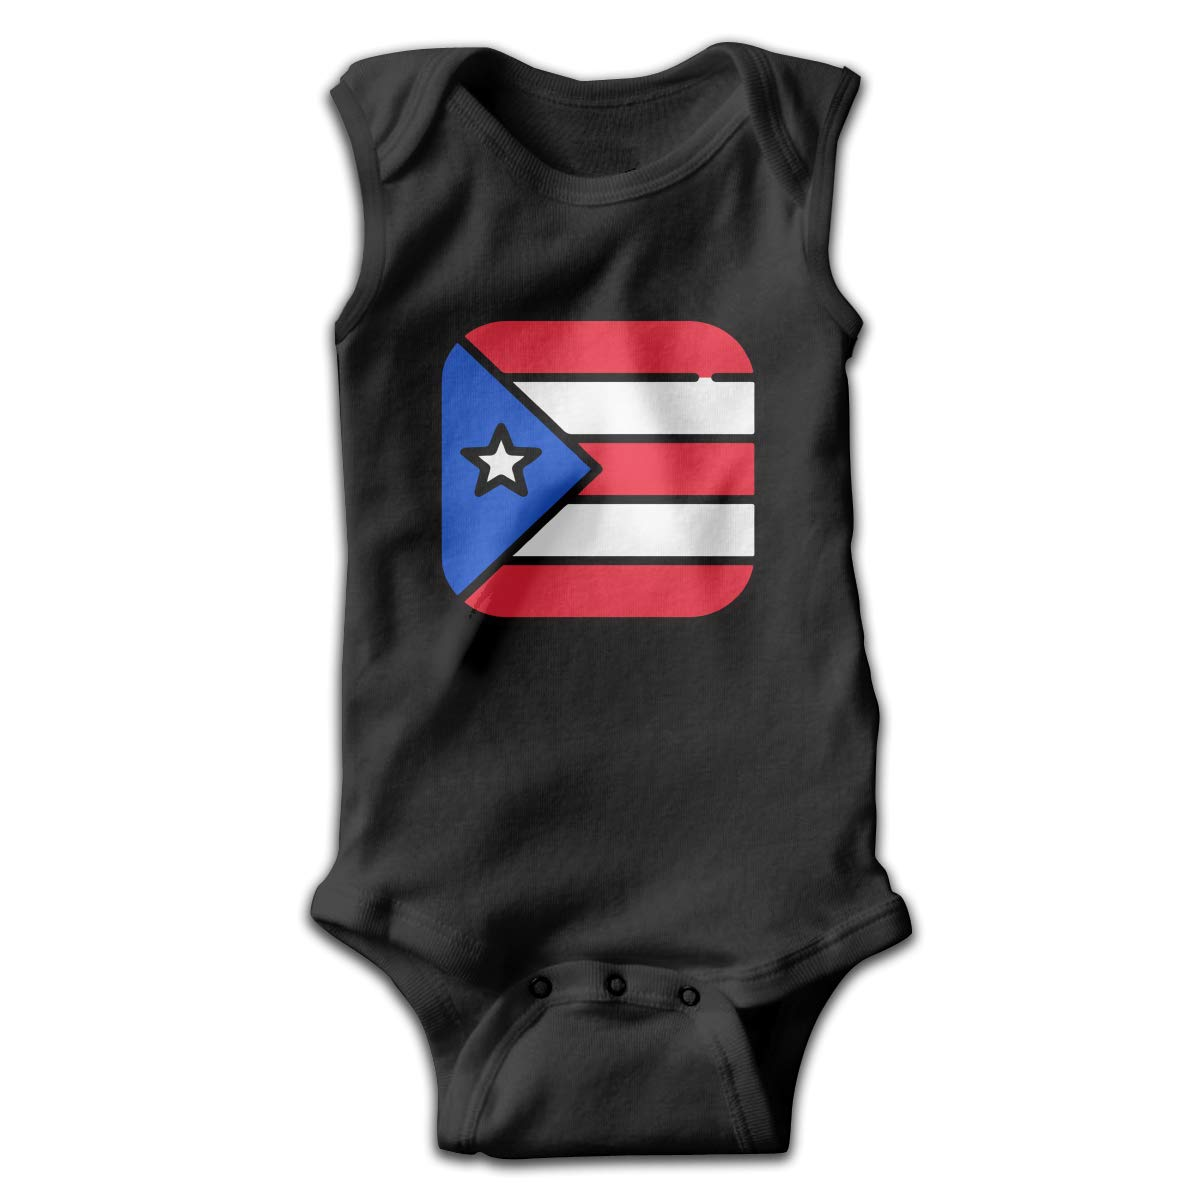 Newborn Puerto Rico Flags 1 Sleeveless Baby Clothes Playsuit 100/% Cotton